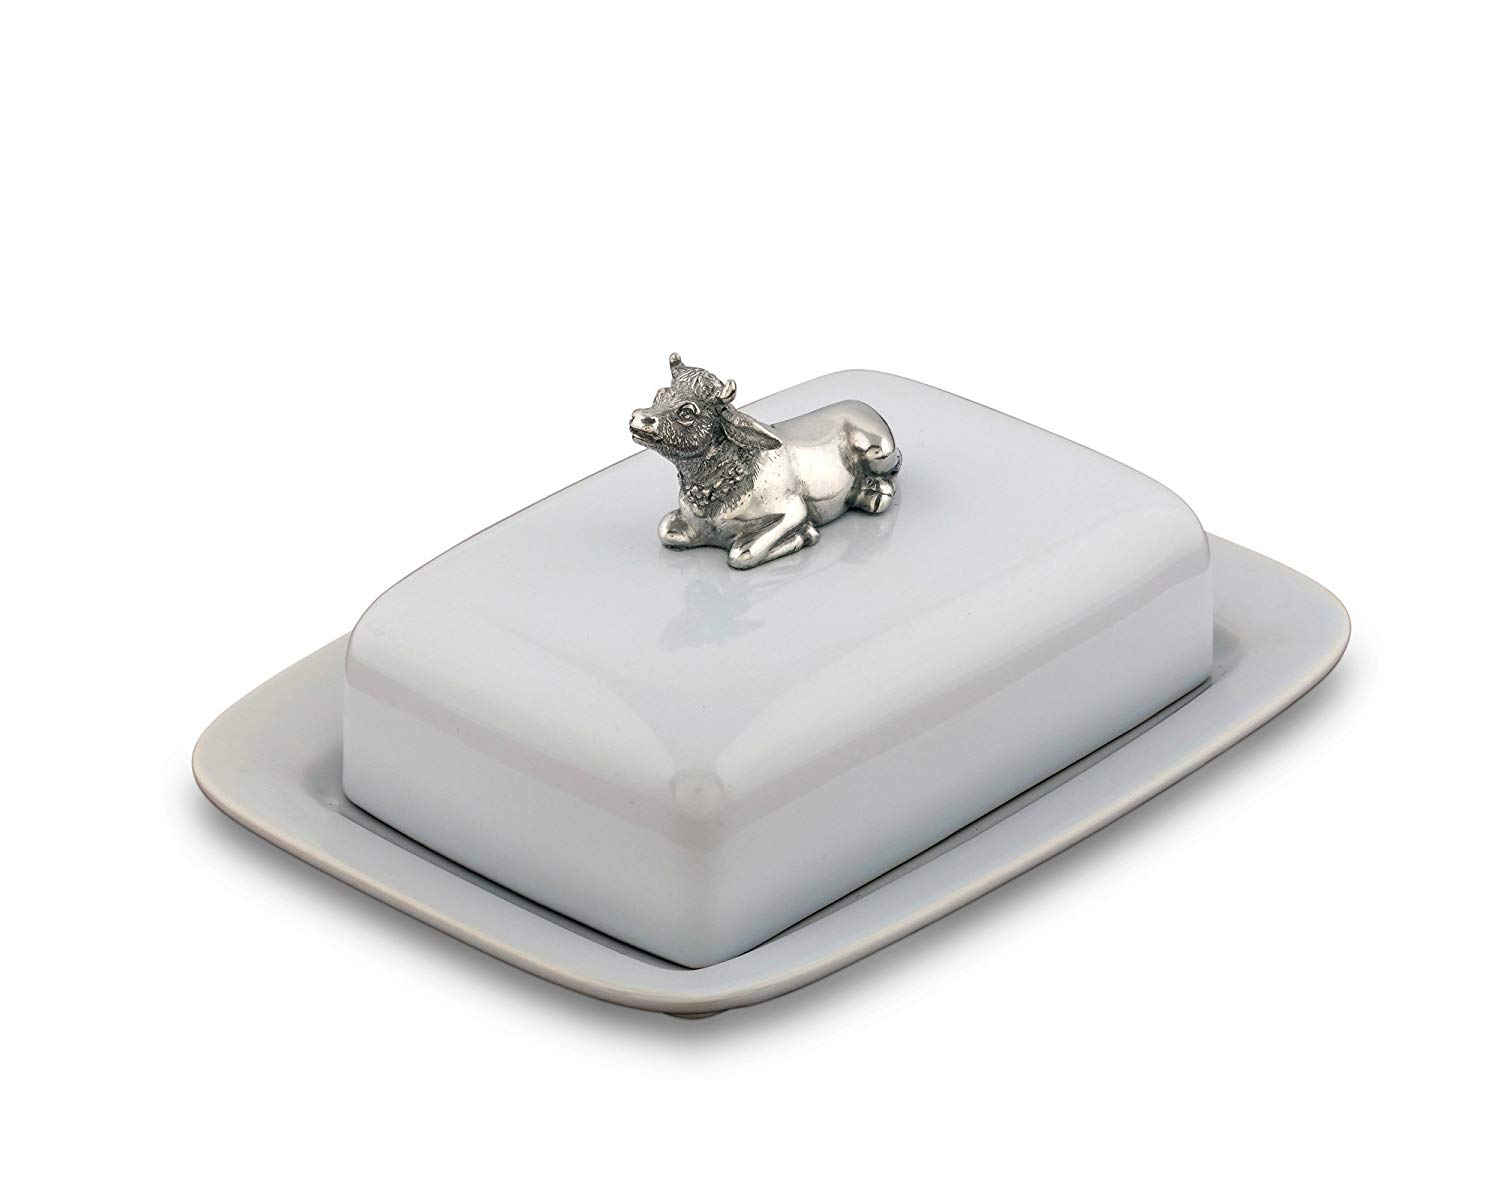 """Vagabond House Stoneware Pewter Metal Mabel the Cow Butter Cream Cheese Dish, 8"""" Long x 6"""" Wide"""